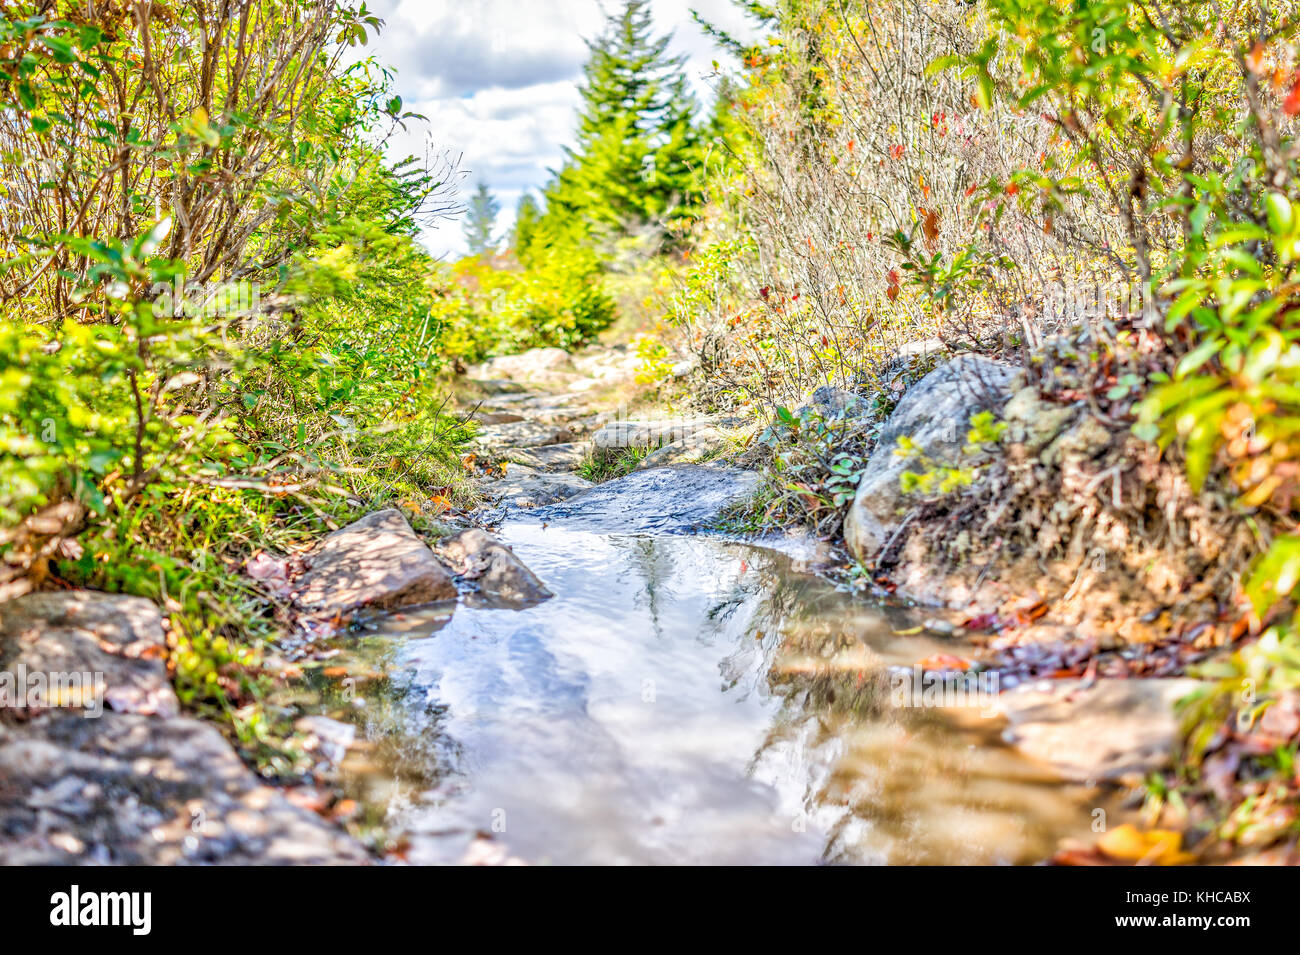 Large puddle on boggy bog area hiking trail in Dolly Sods, West Virginia between bushes and calm reflection closeup - Stock Image